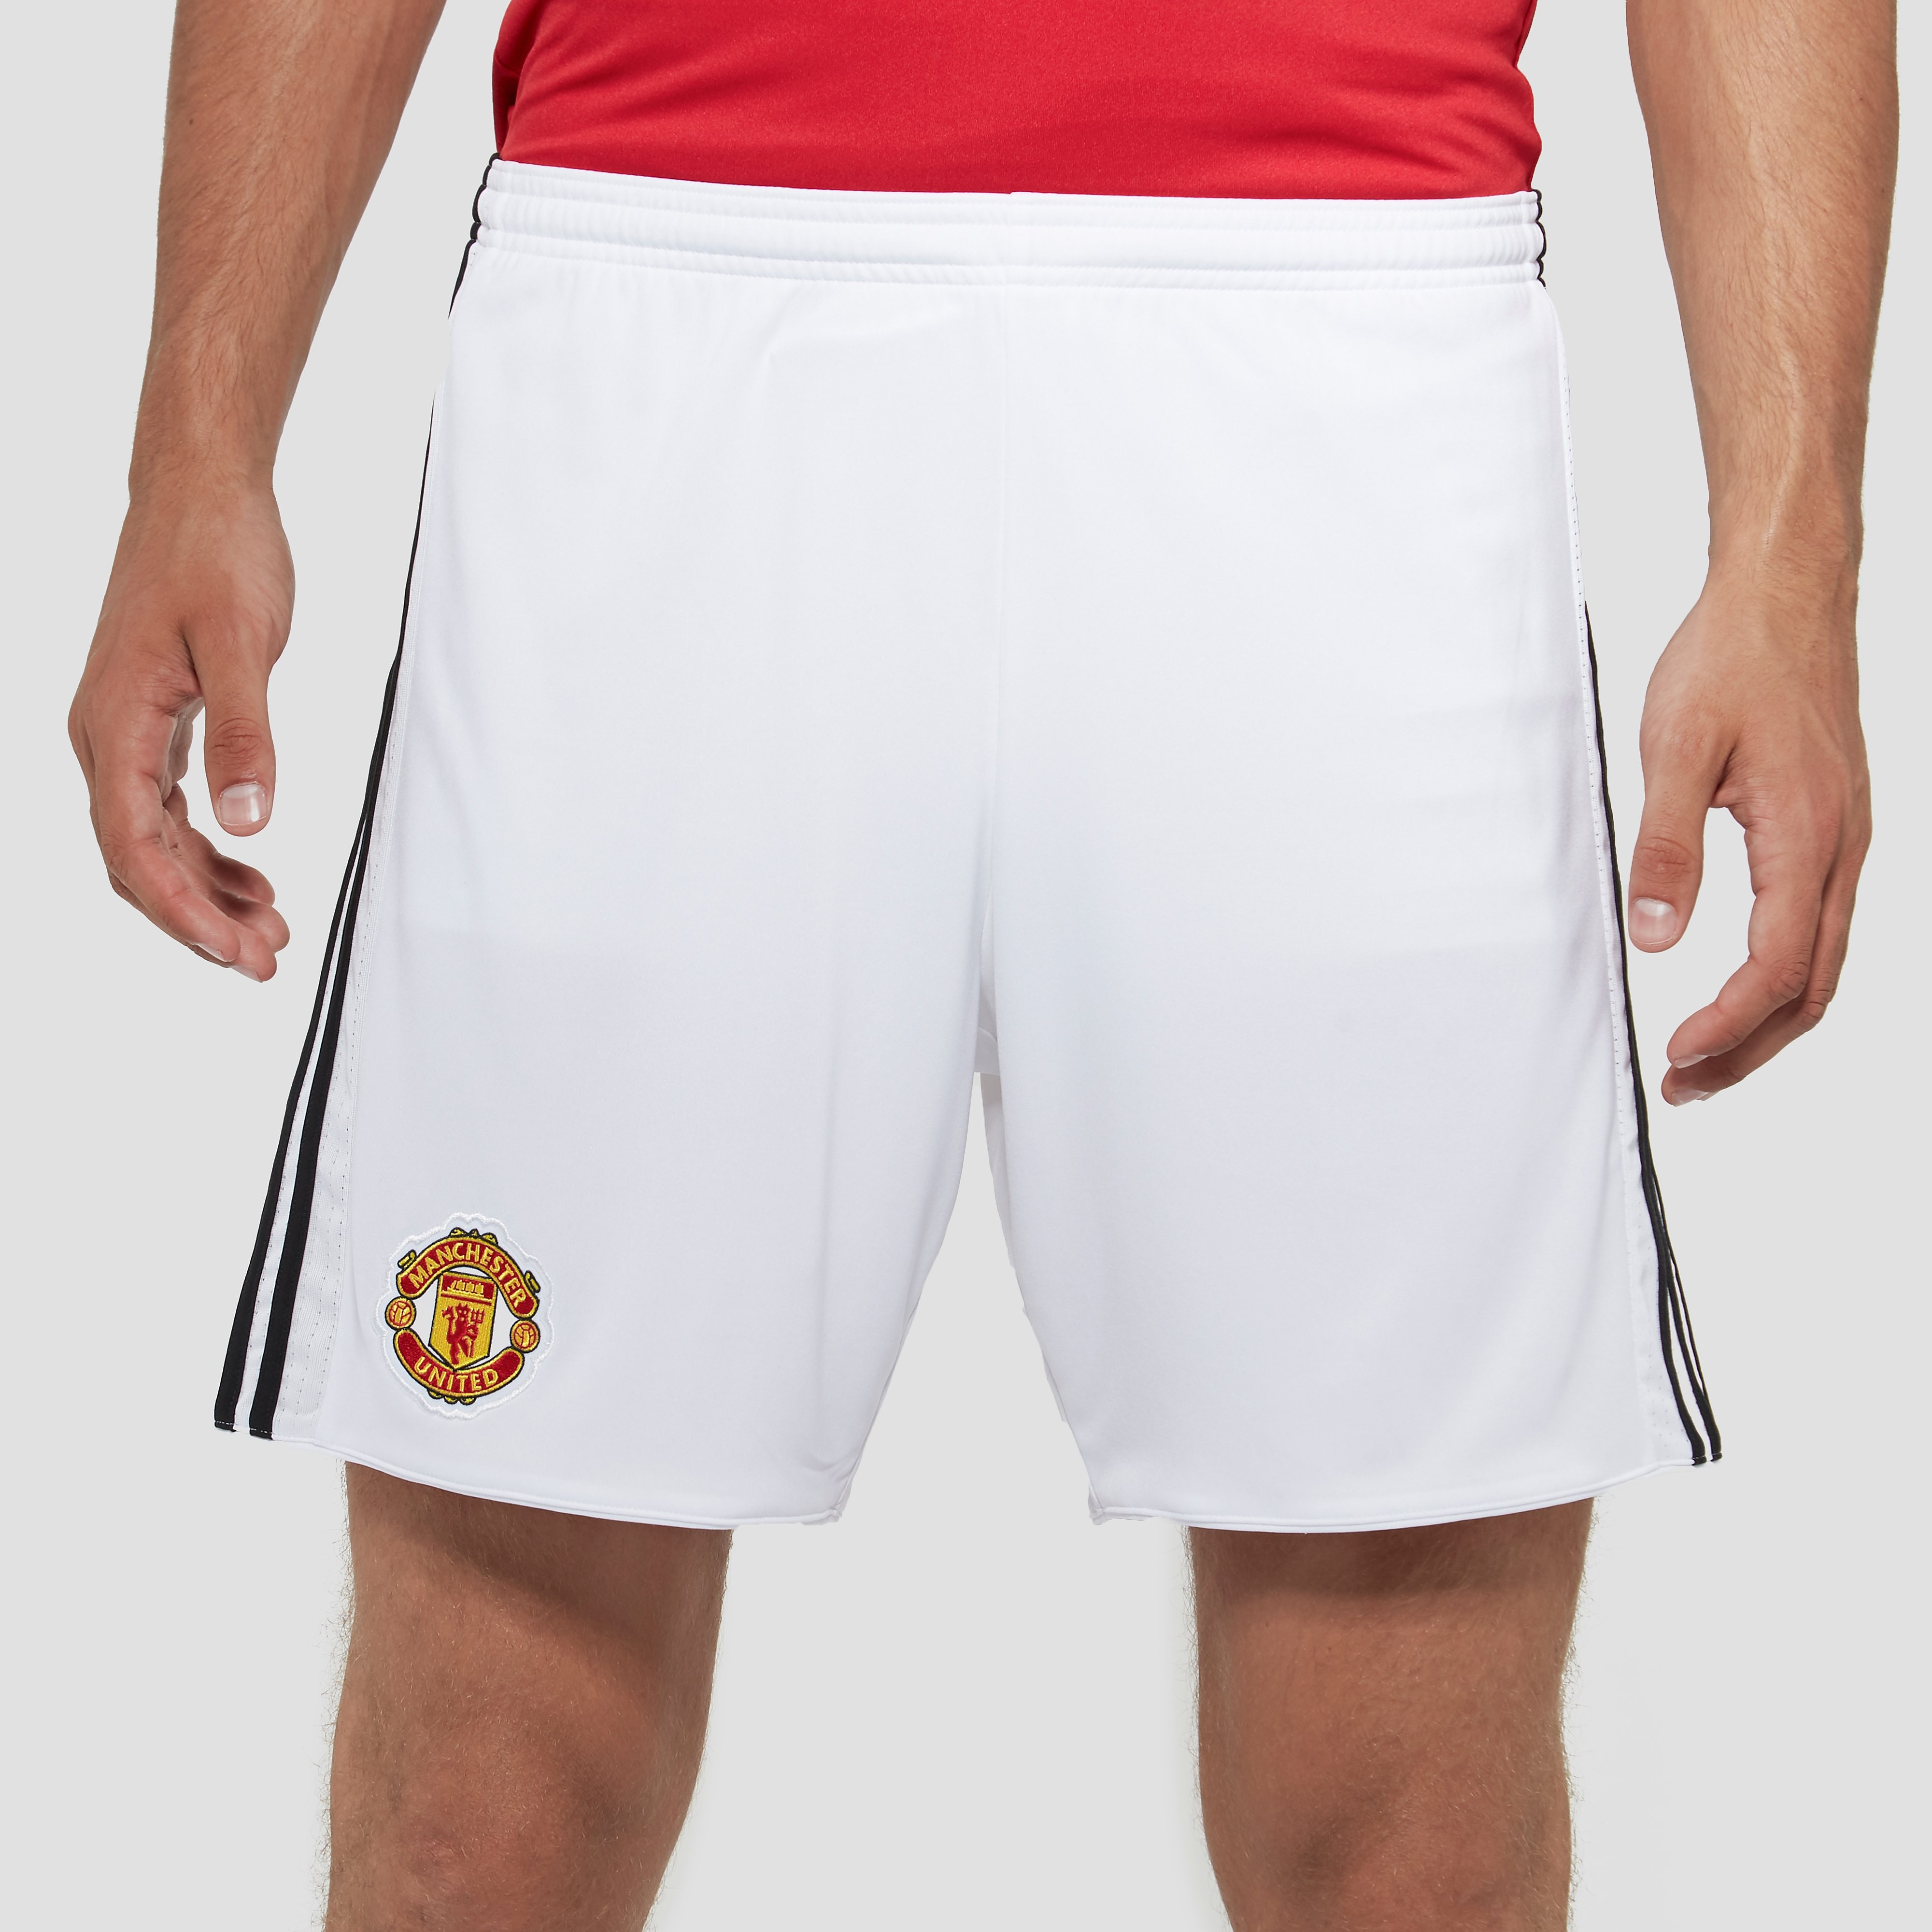 ADIDAS MANCHESTER UNITED FC THUISSHORT